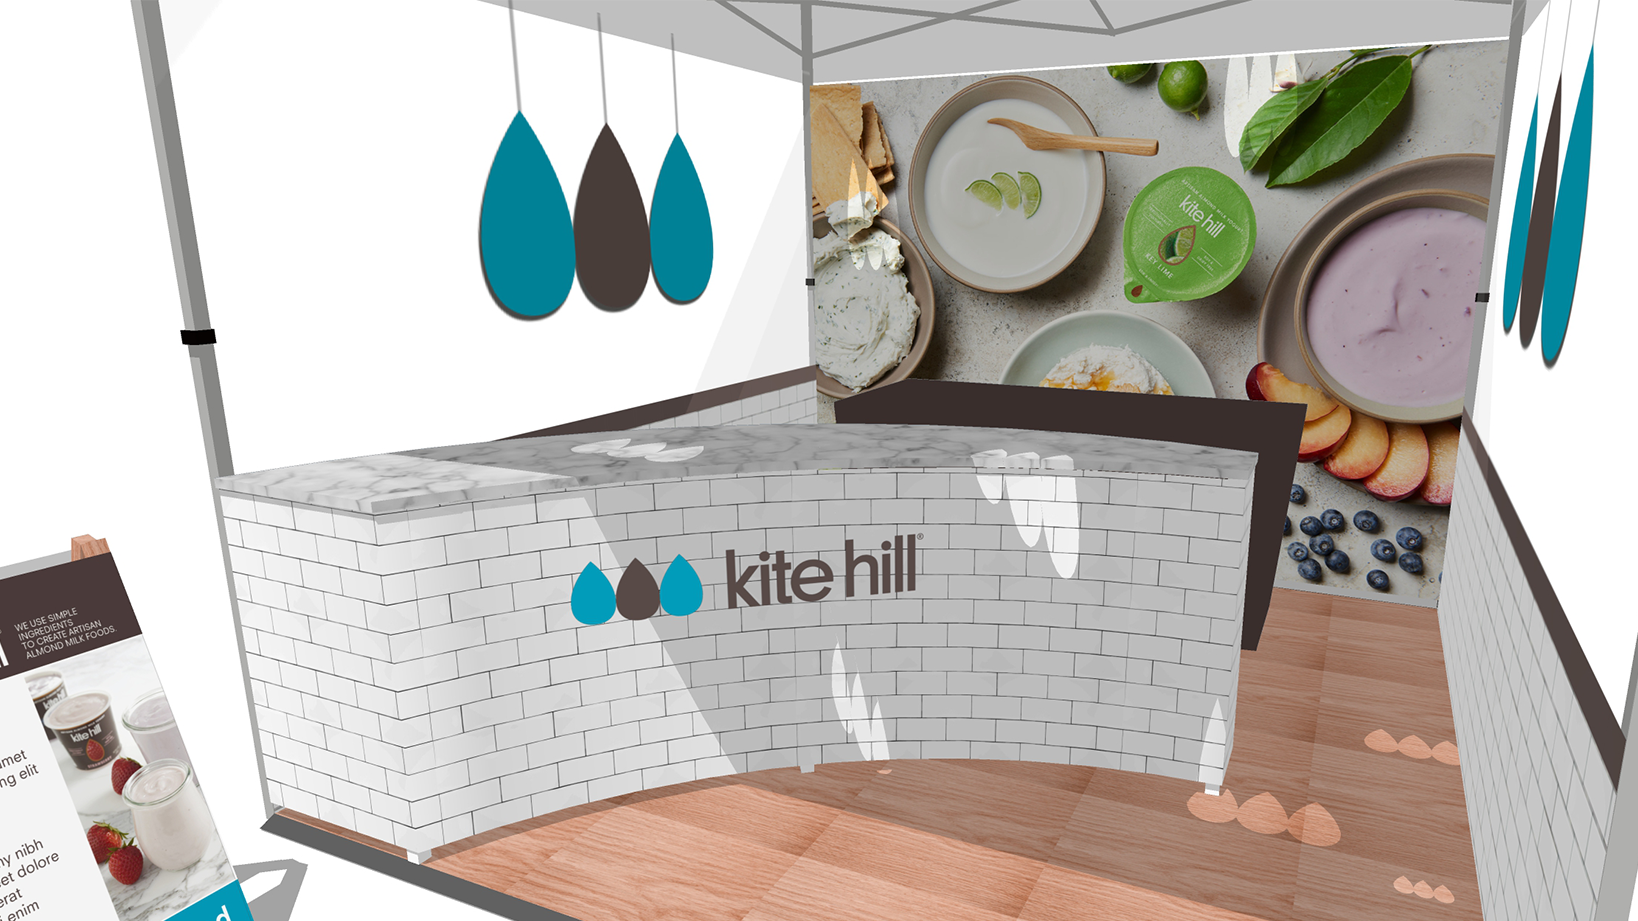 Kite Hill – Booth and Environmental Design